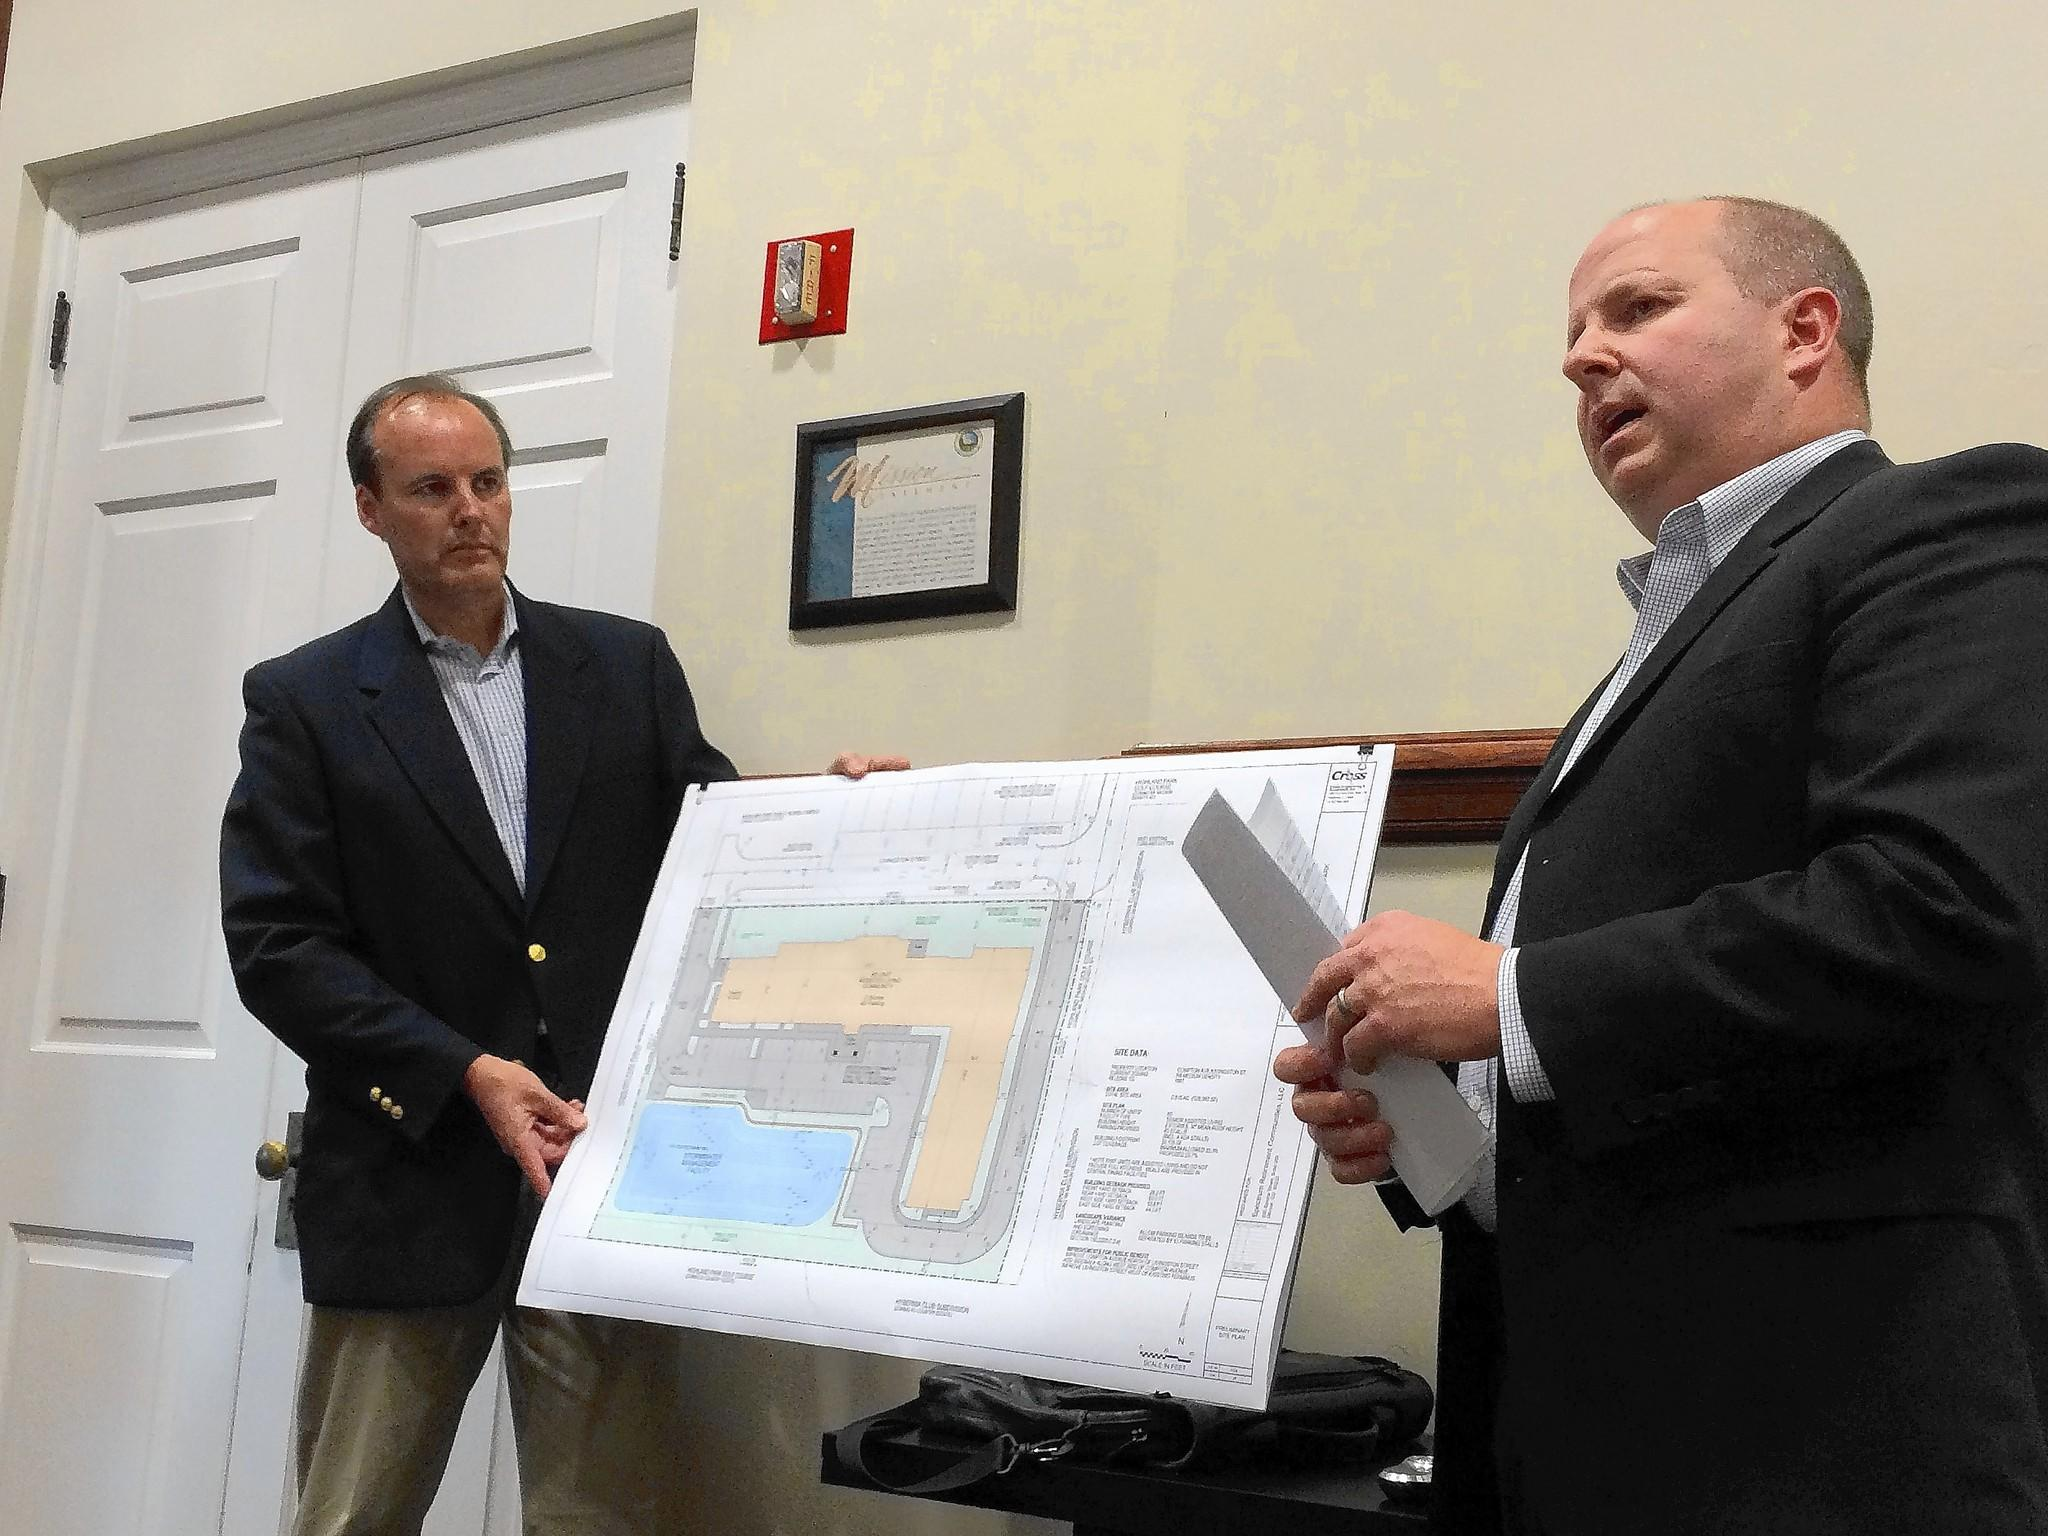 Mike Longfellow, at left, vice president of development and construction for Spectrum Retirement Communities, and project engineer Stephen Cross present a smaller-scale proposal for a senior living facility in Highland Park than the Spectrum plan rejected back in March.